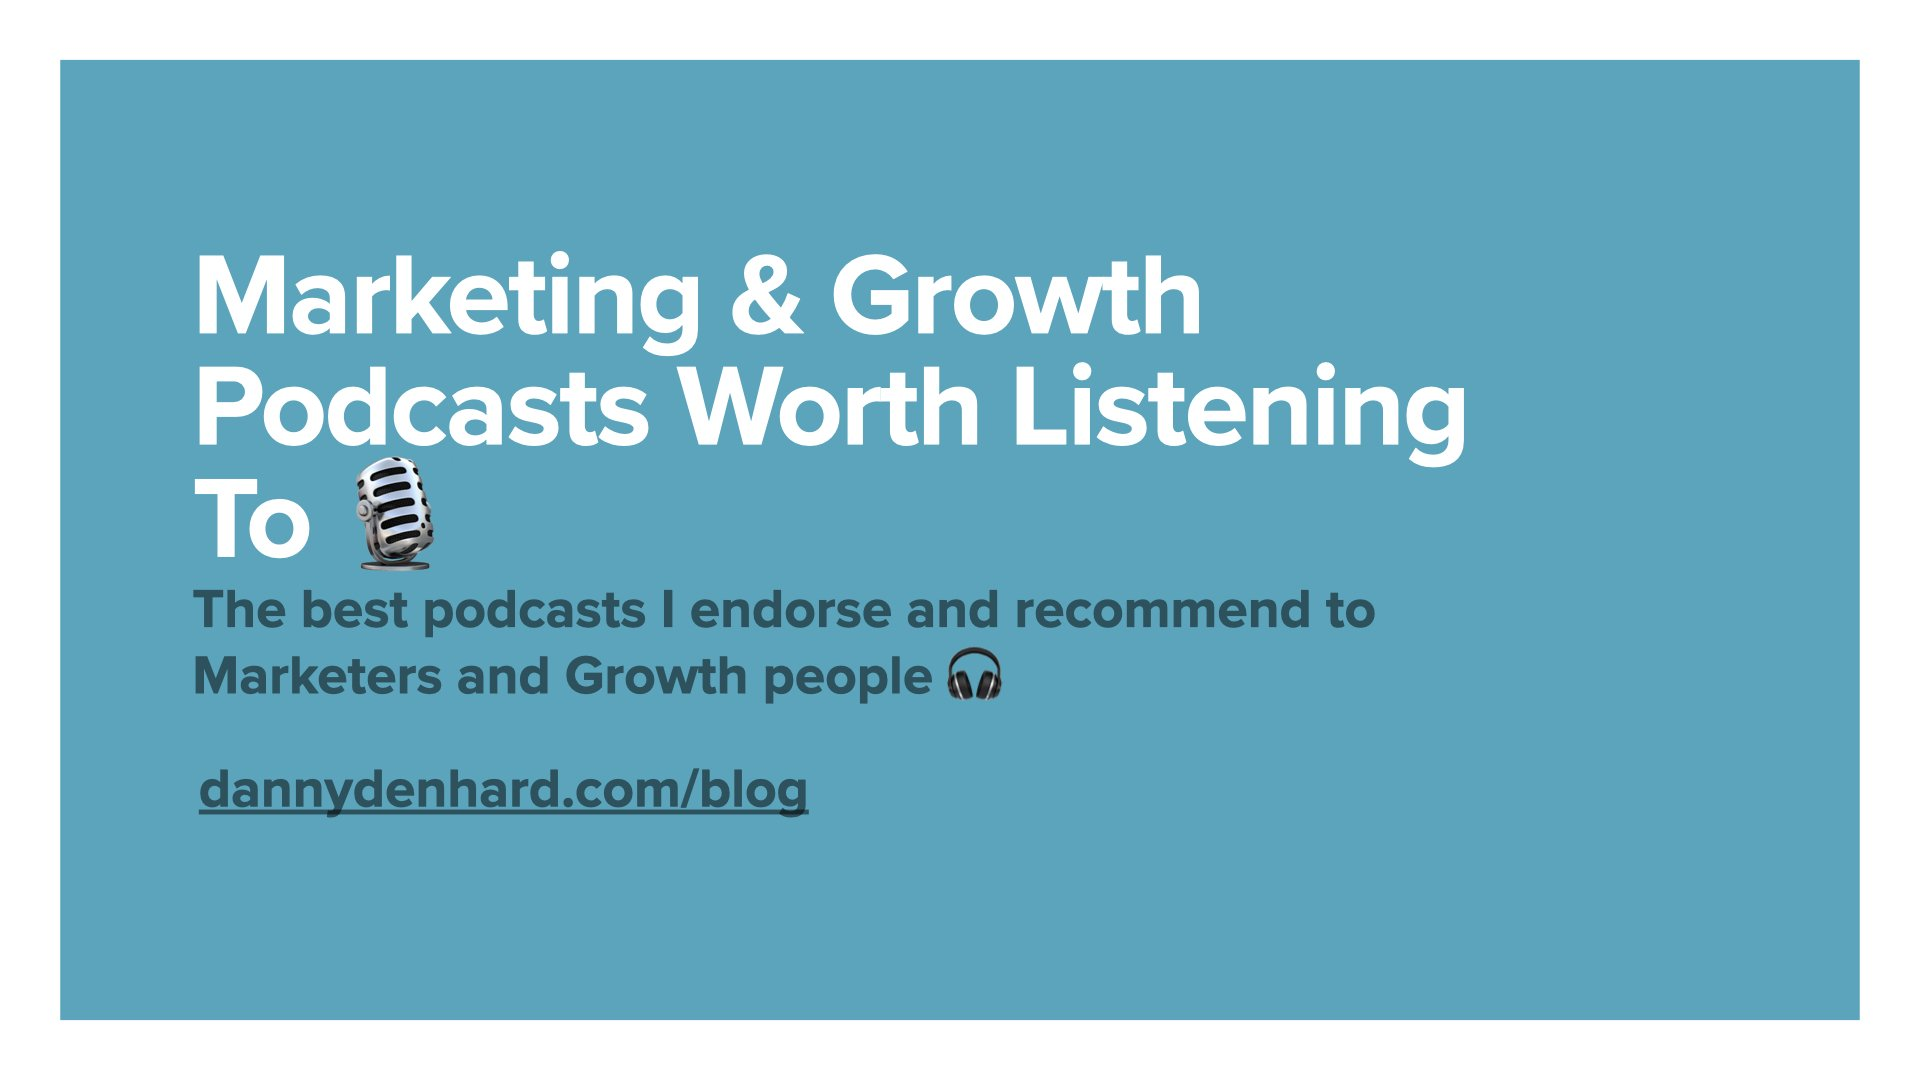 Marketing & Growth Podcasts Worth Listening To